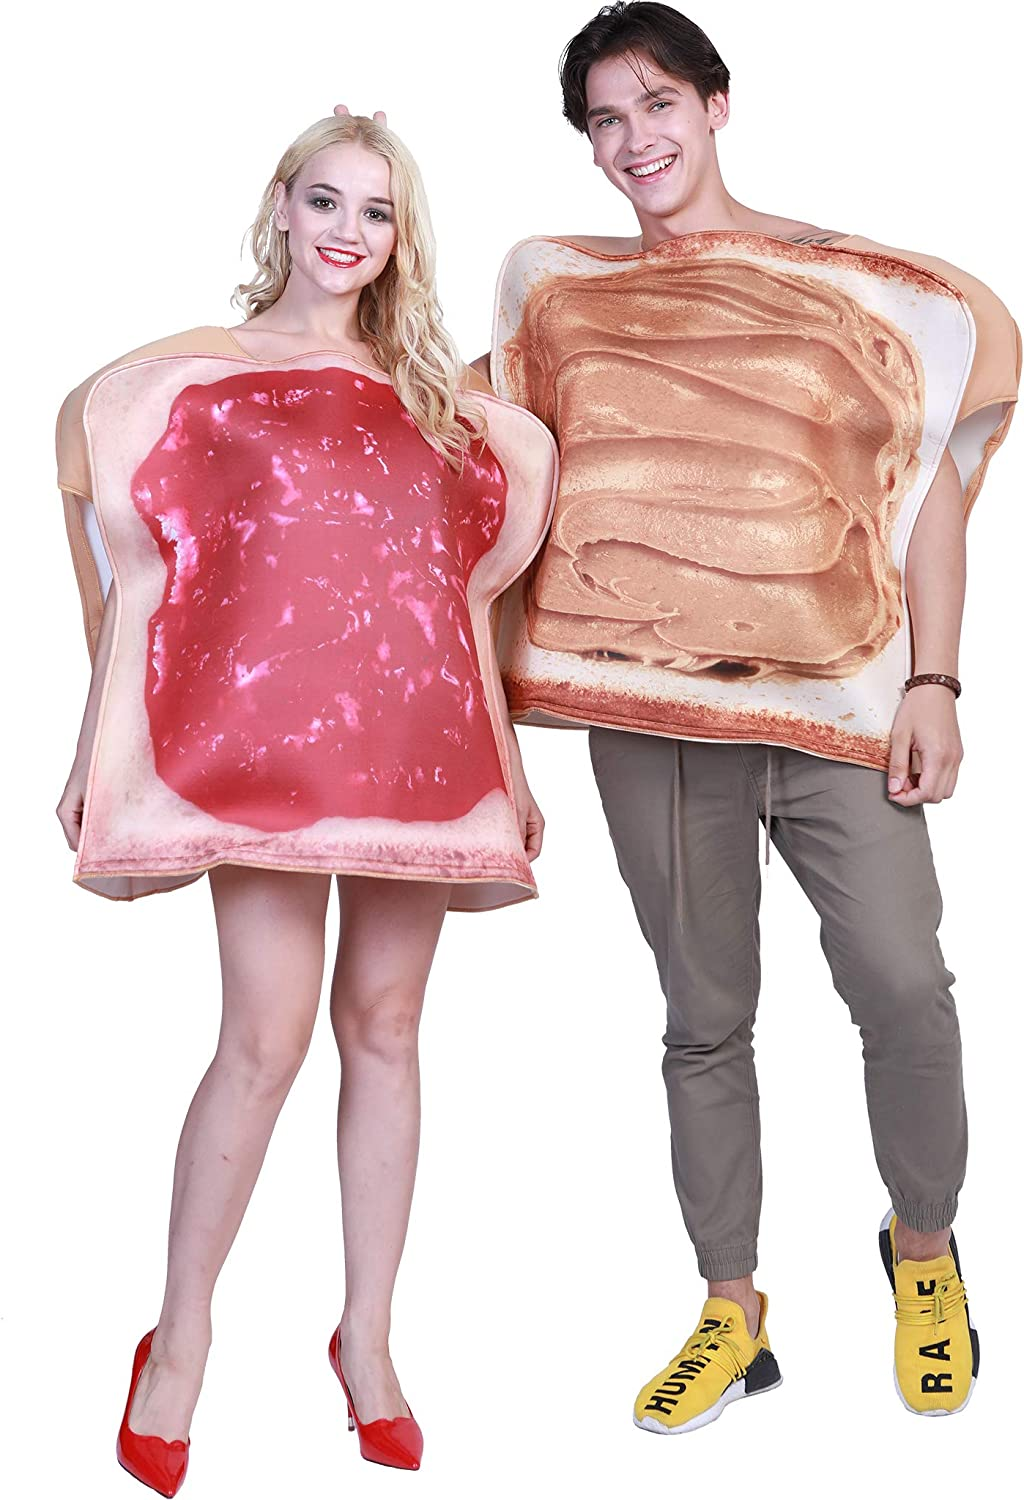 EraSpooky Couples Halloween Costumes for Adults Plus Size Funny Food Peanut Butter and Jelly Costume - Cosplay Party